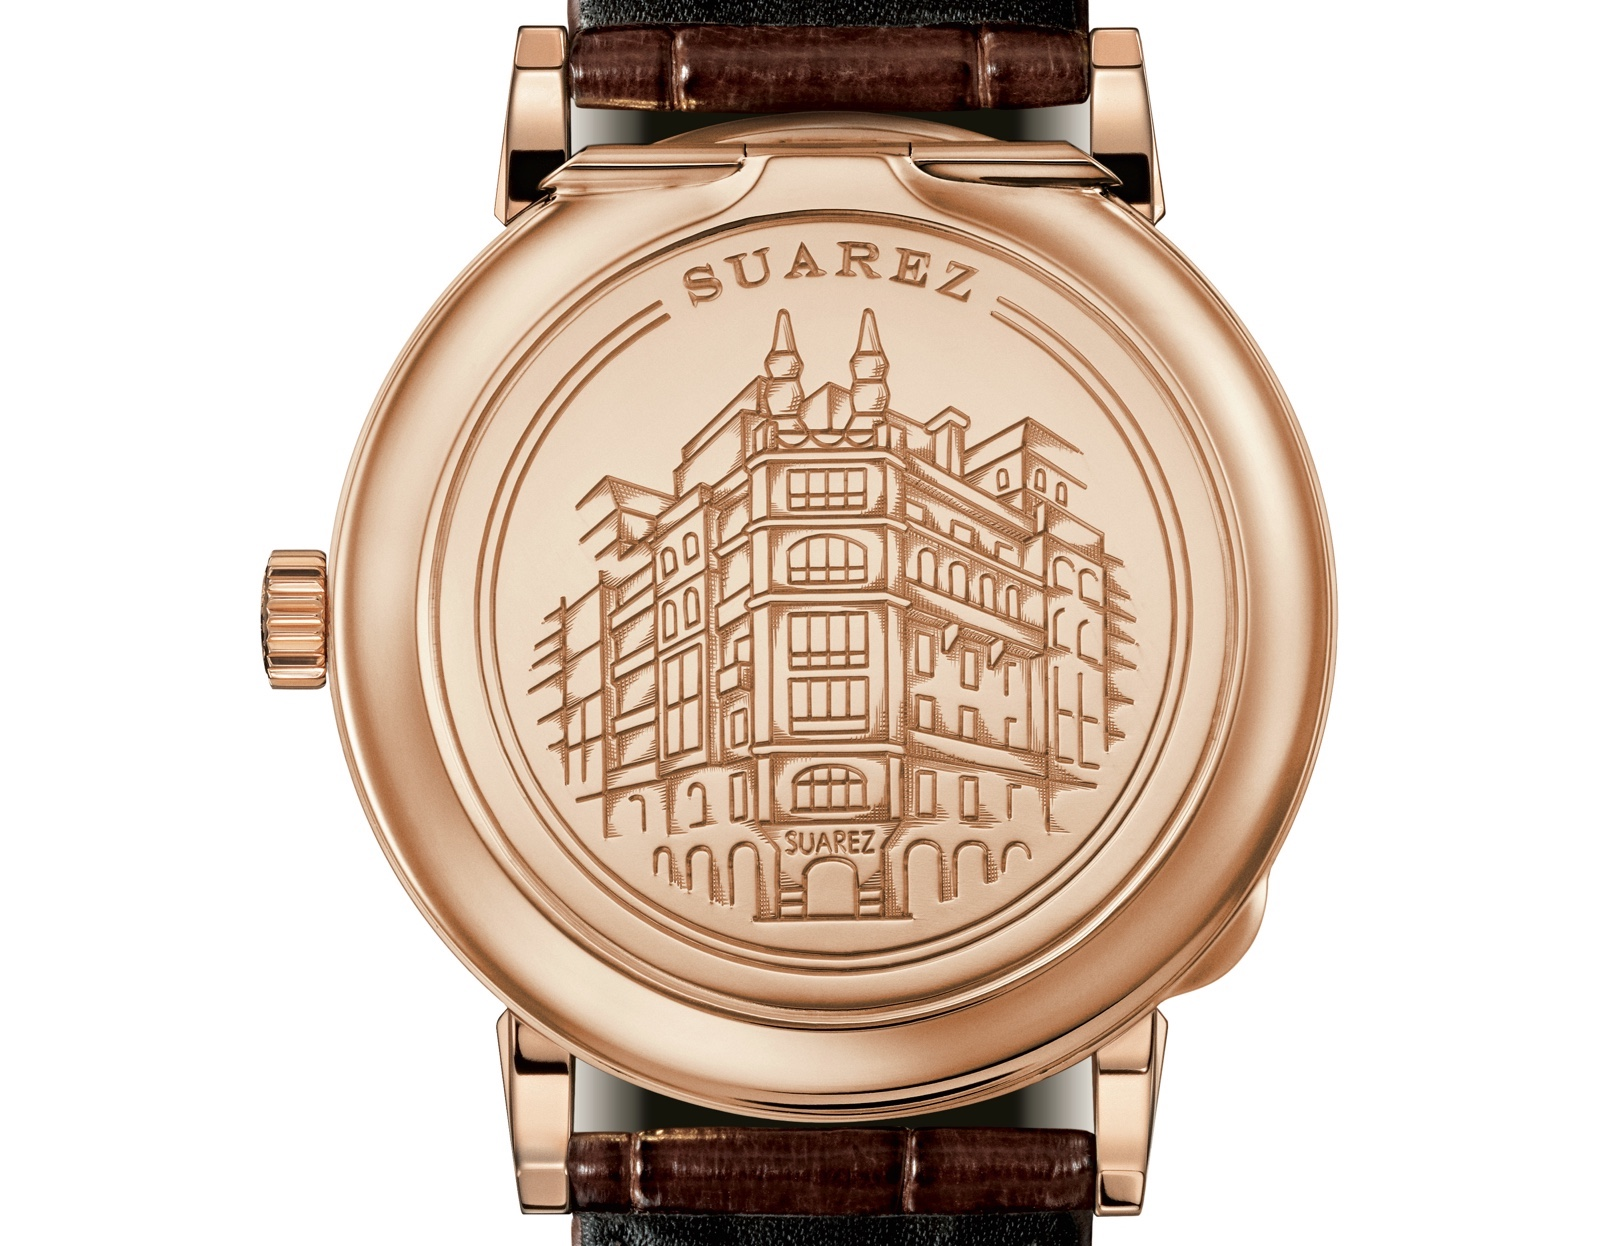 Lange 1815 Up Down 75 Años Suarez Grabado